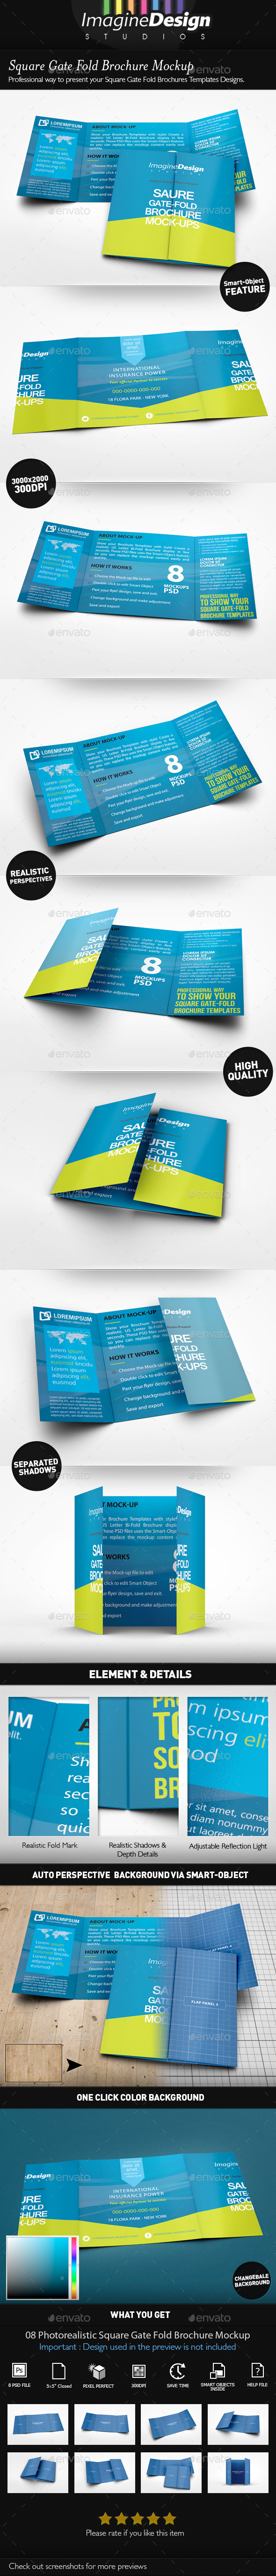 Square Gate Fold Brochure Mockup by BaGeRa – Gate Fold Brochure Mockup